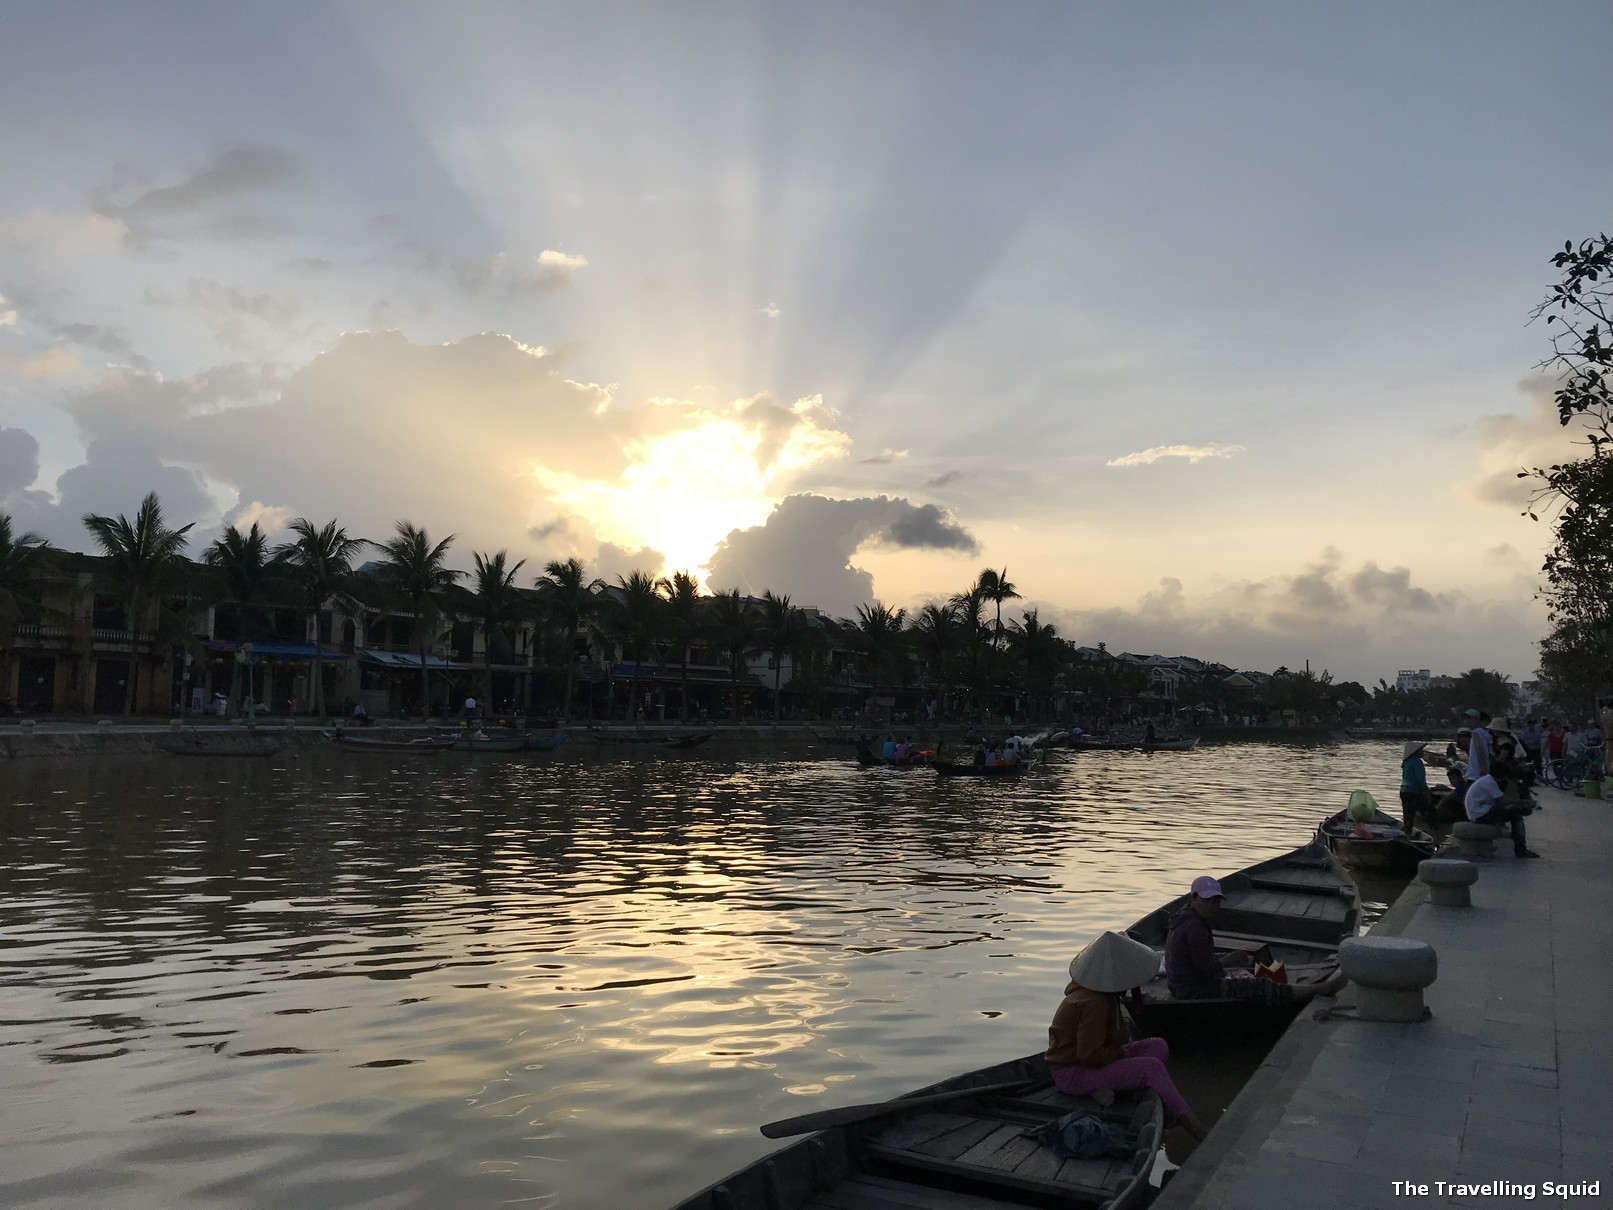 Sunset at the Thu Bon River in Hoi An